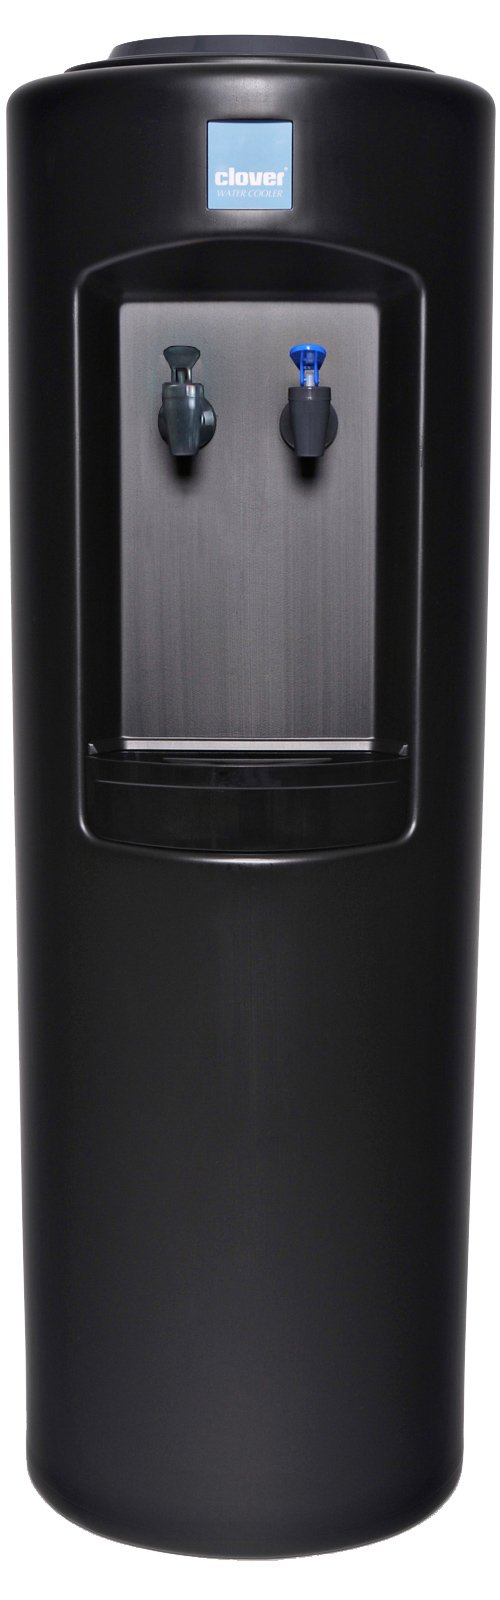 Clover B7B Warm and Cold Water Dispenser Black